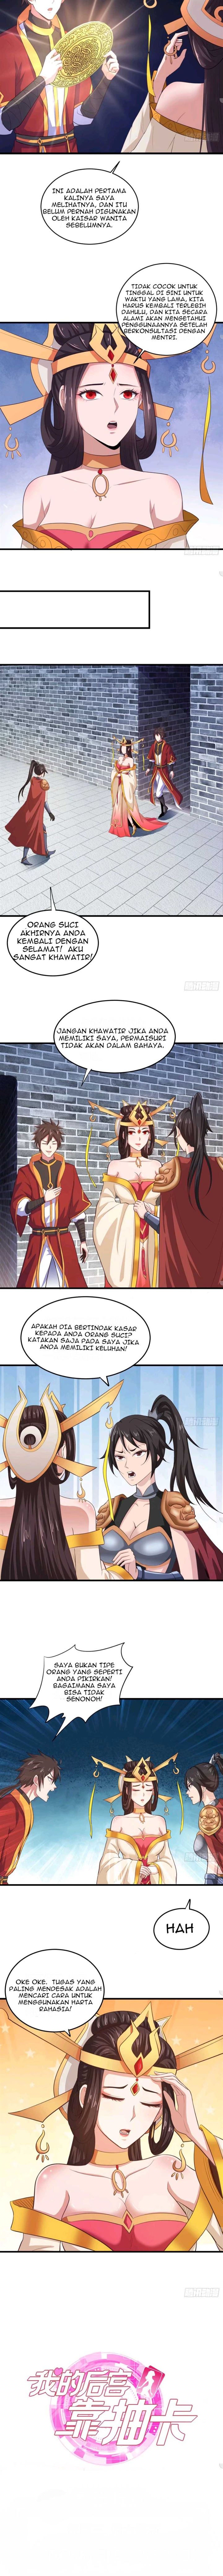 My Harem Depend on Drawing Cards Chapter 82